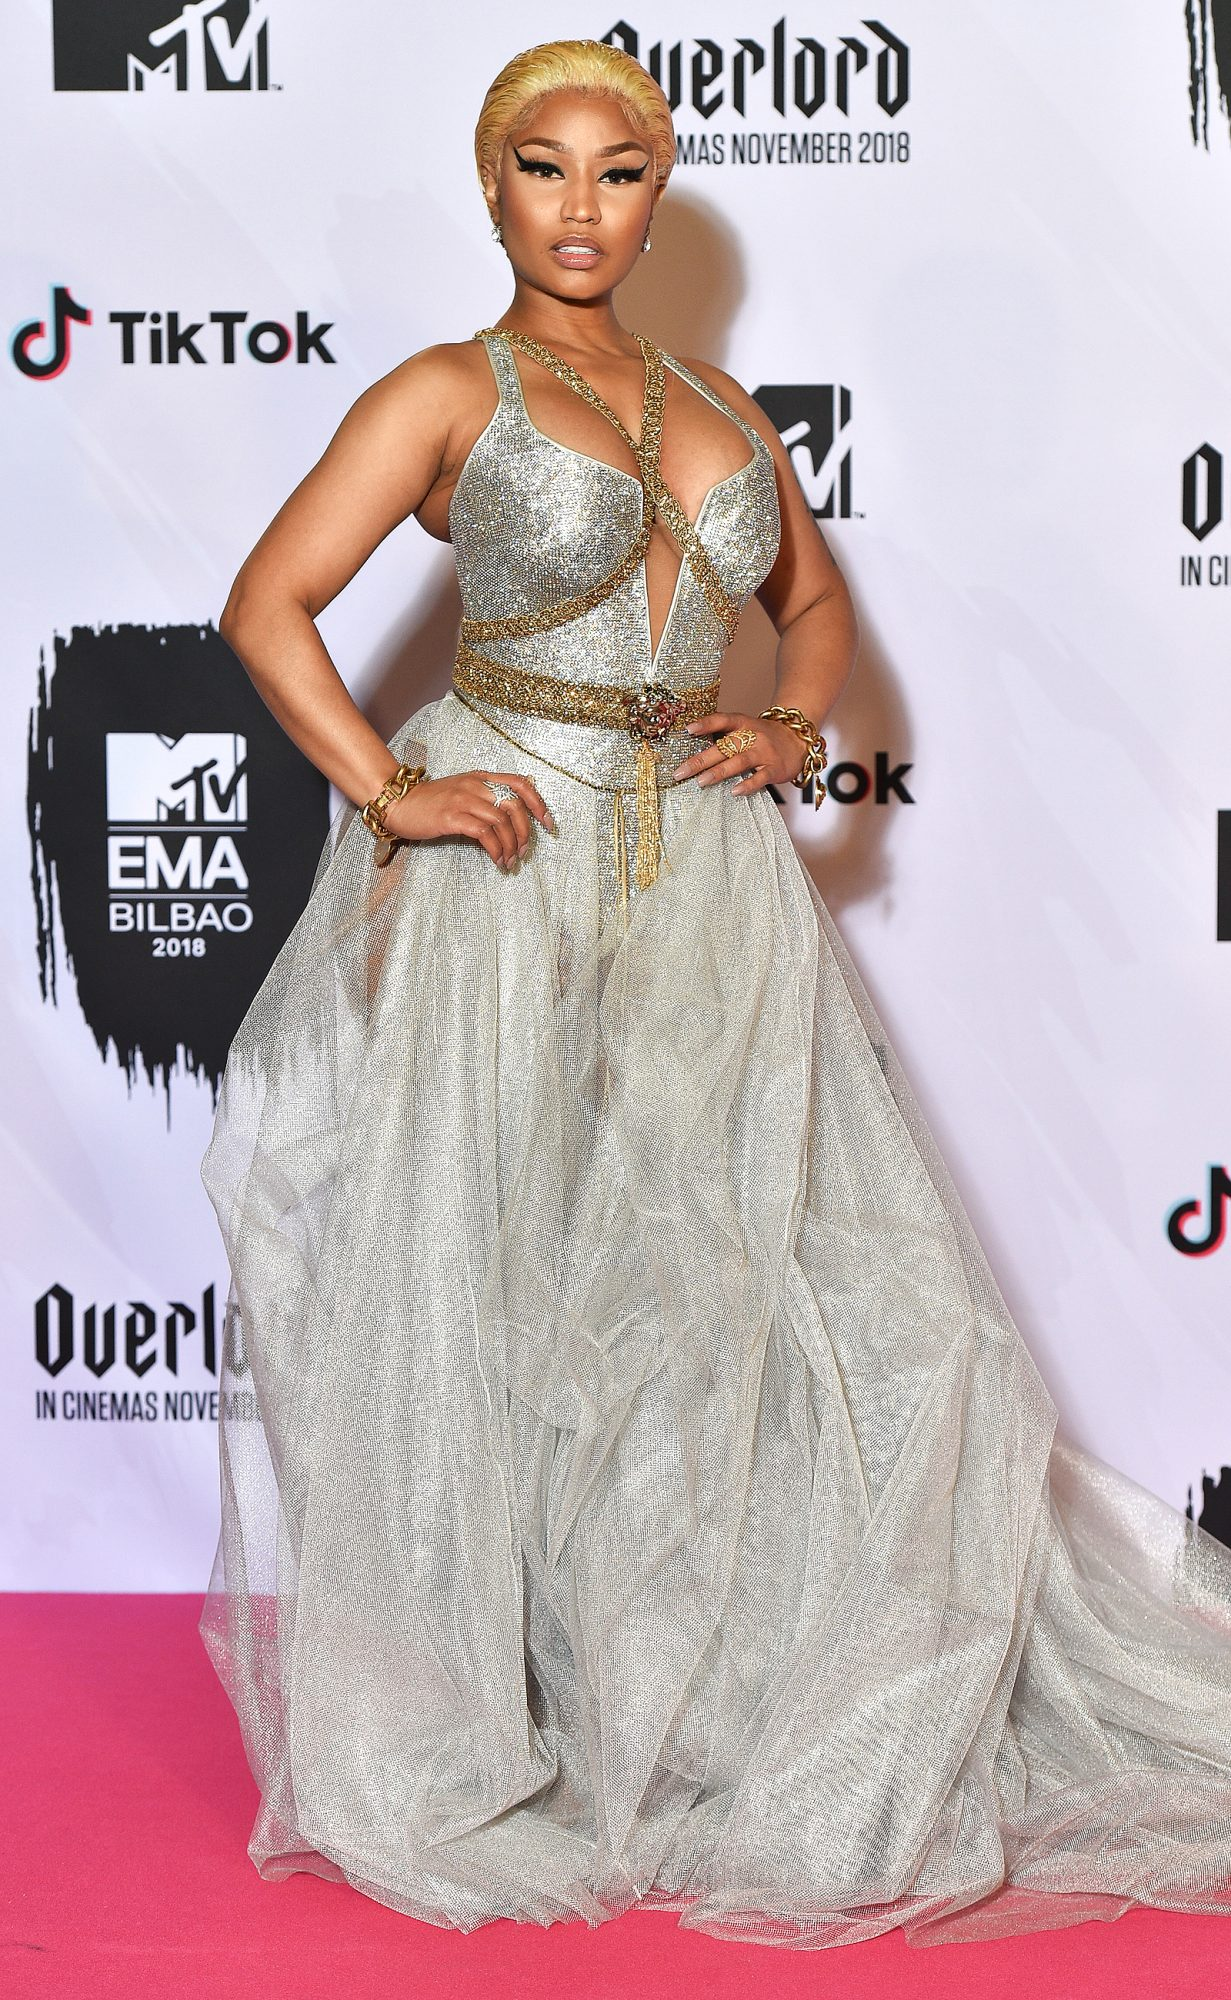 Red Carpet bling Nicki Minaj In A Glittering Silver Gown with A Corset Bodice with A Deep V-Neck